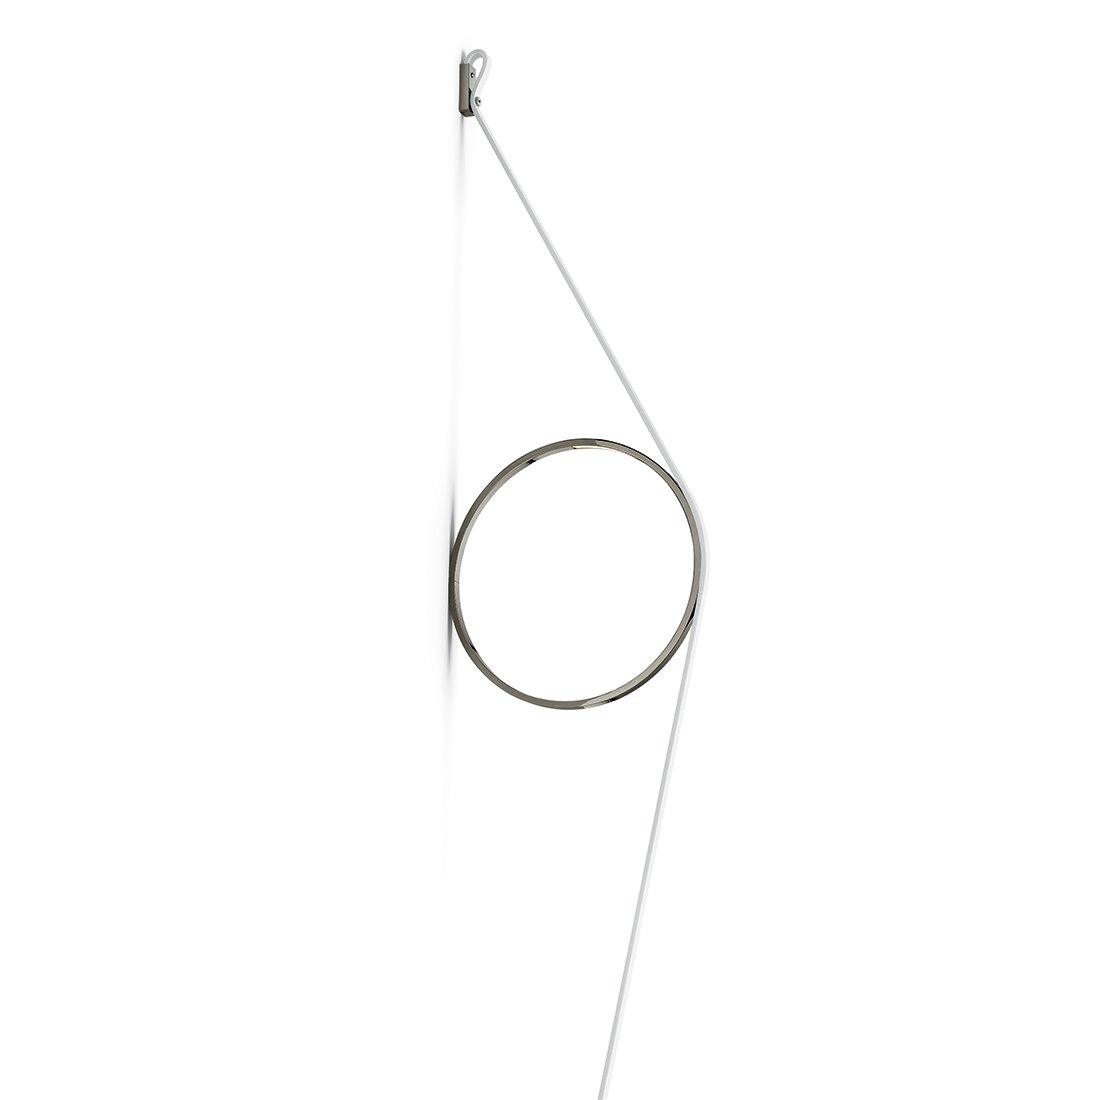 FLOS WireRing Wandlamp Witte Kabel - Antraciete Ring